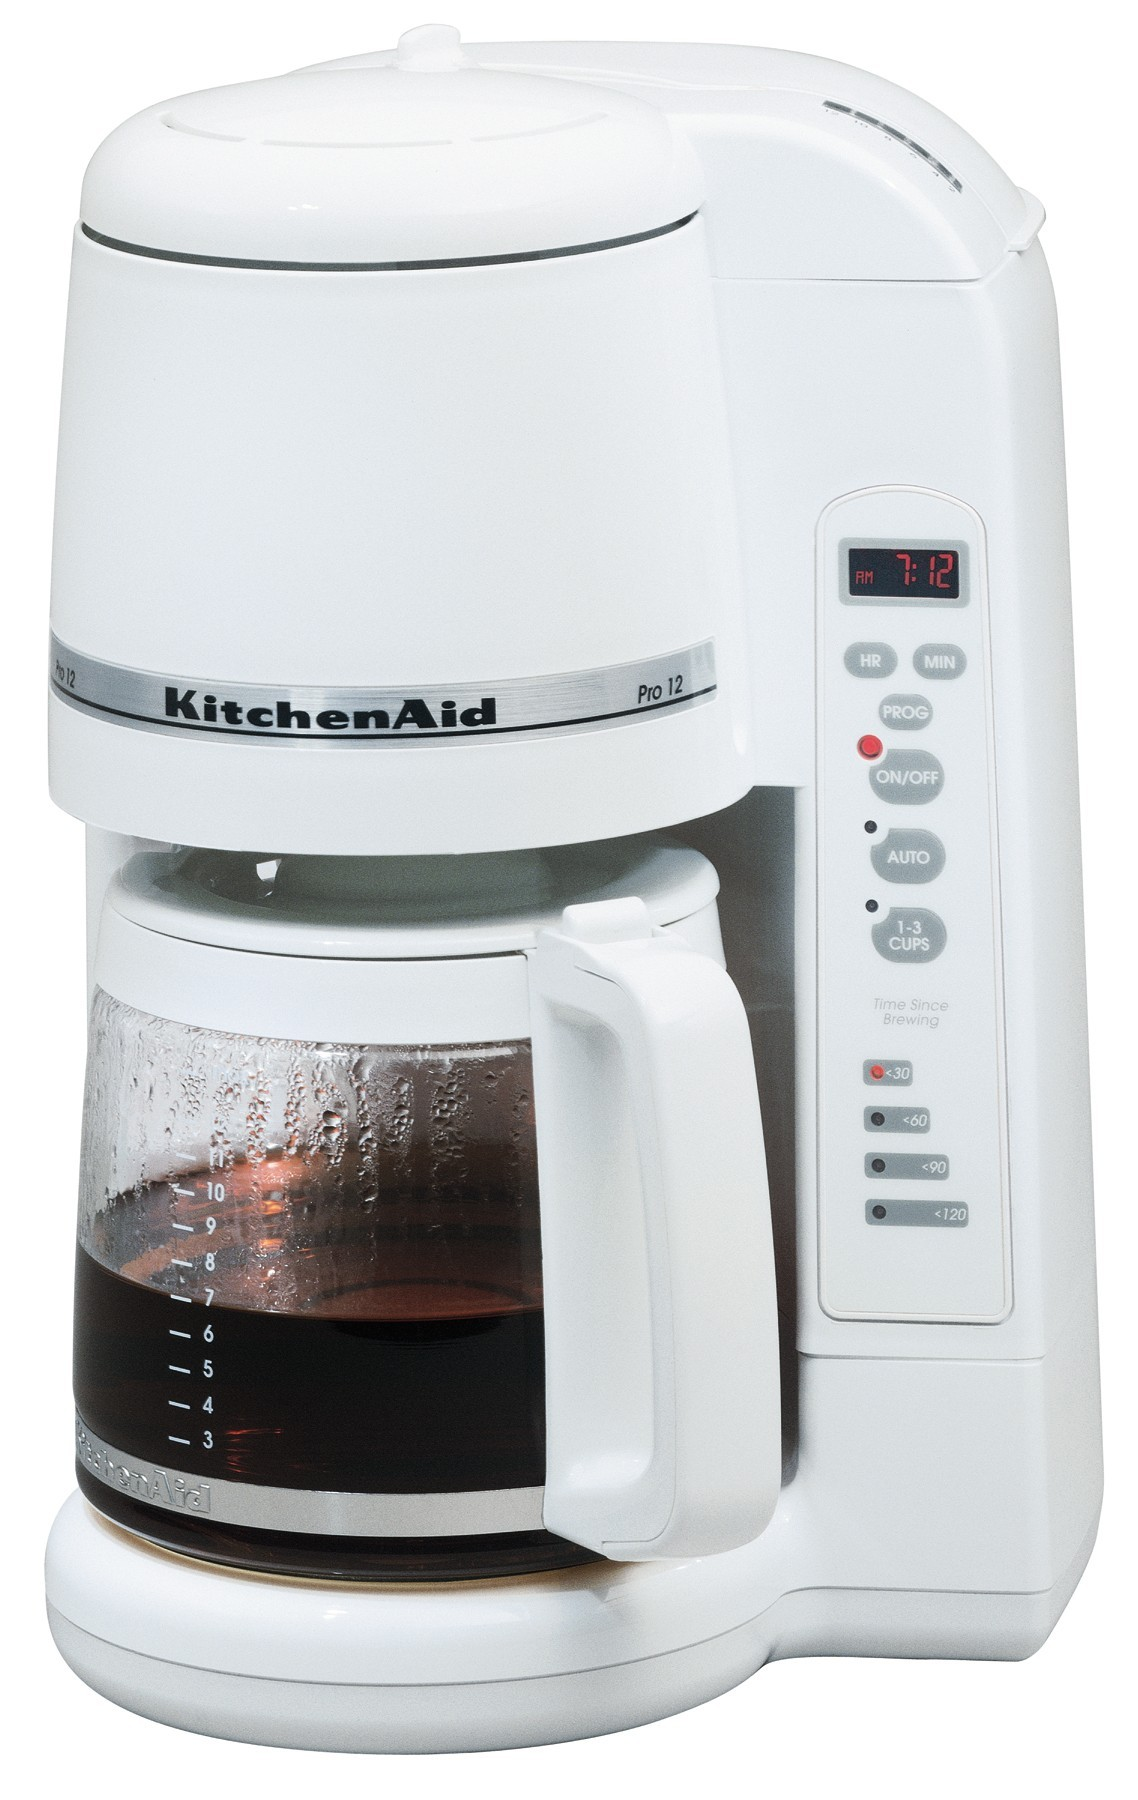 CPSC, Whirlpool Announce Recall of KitchenAid® Coffeemakers | CPSC.gov